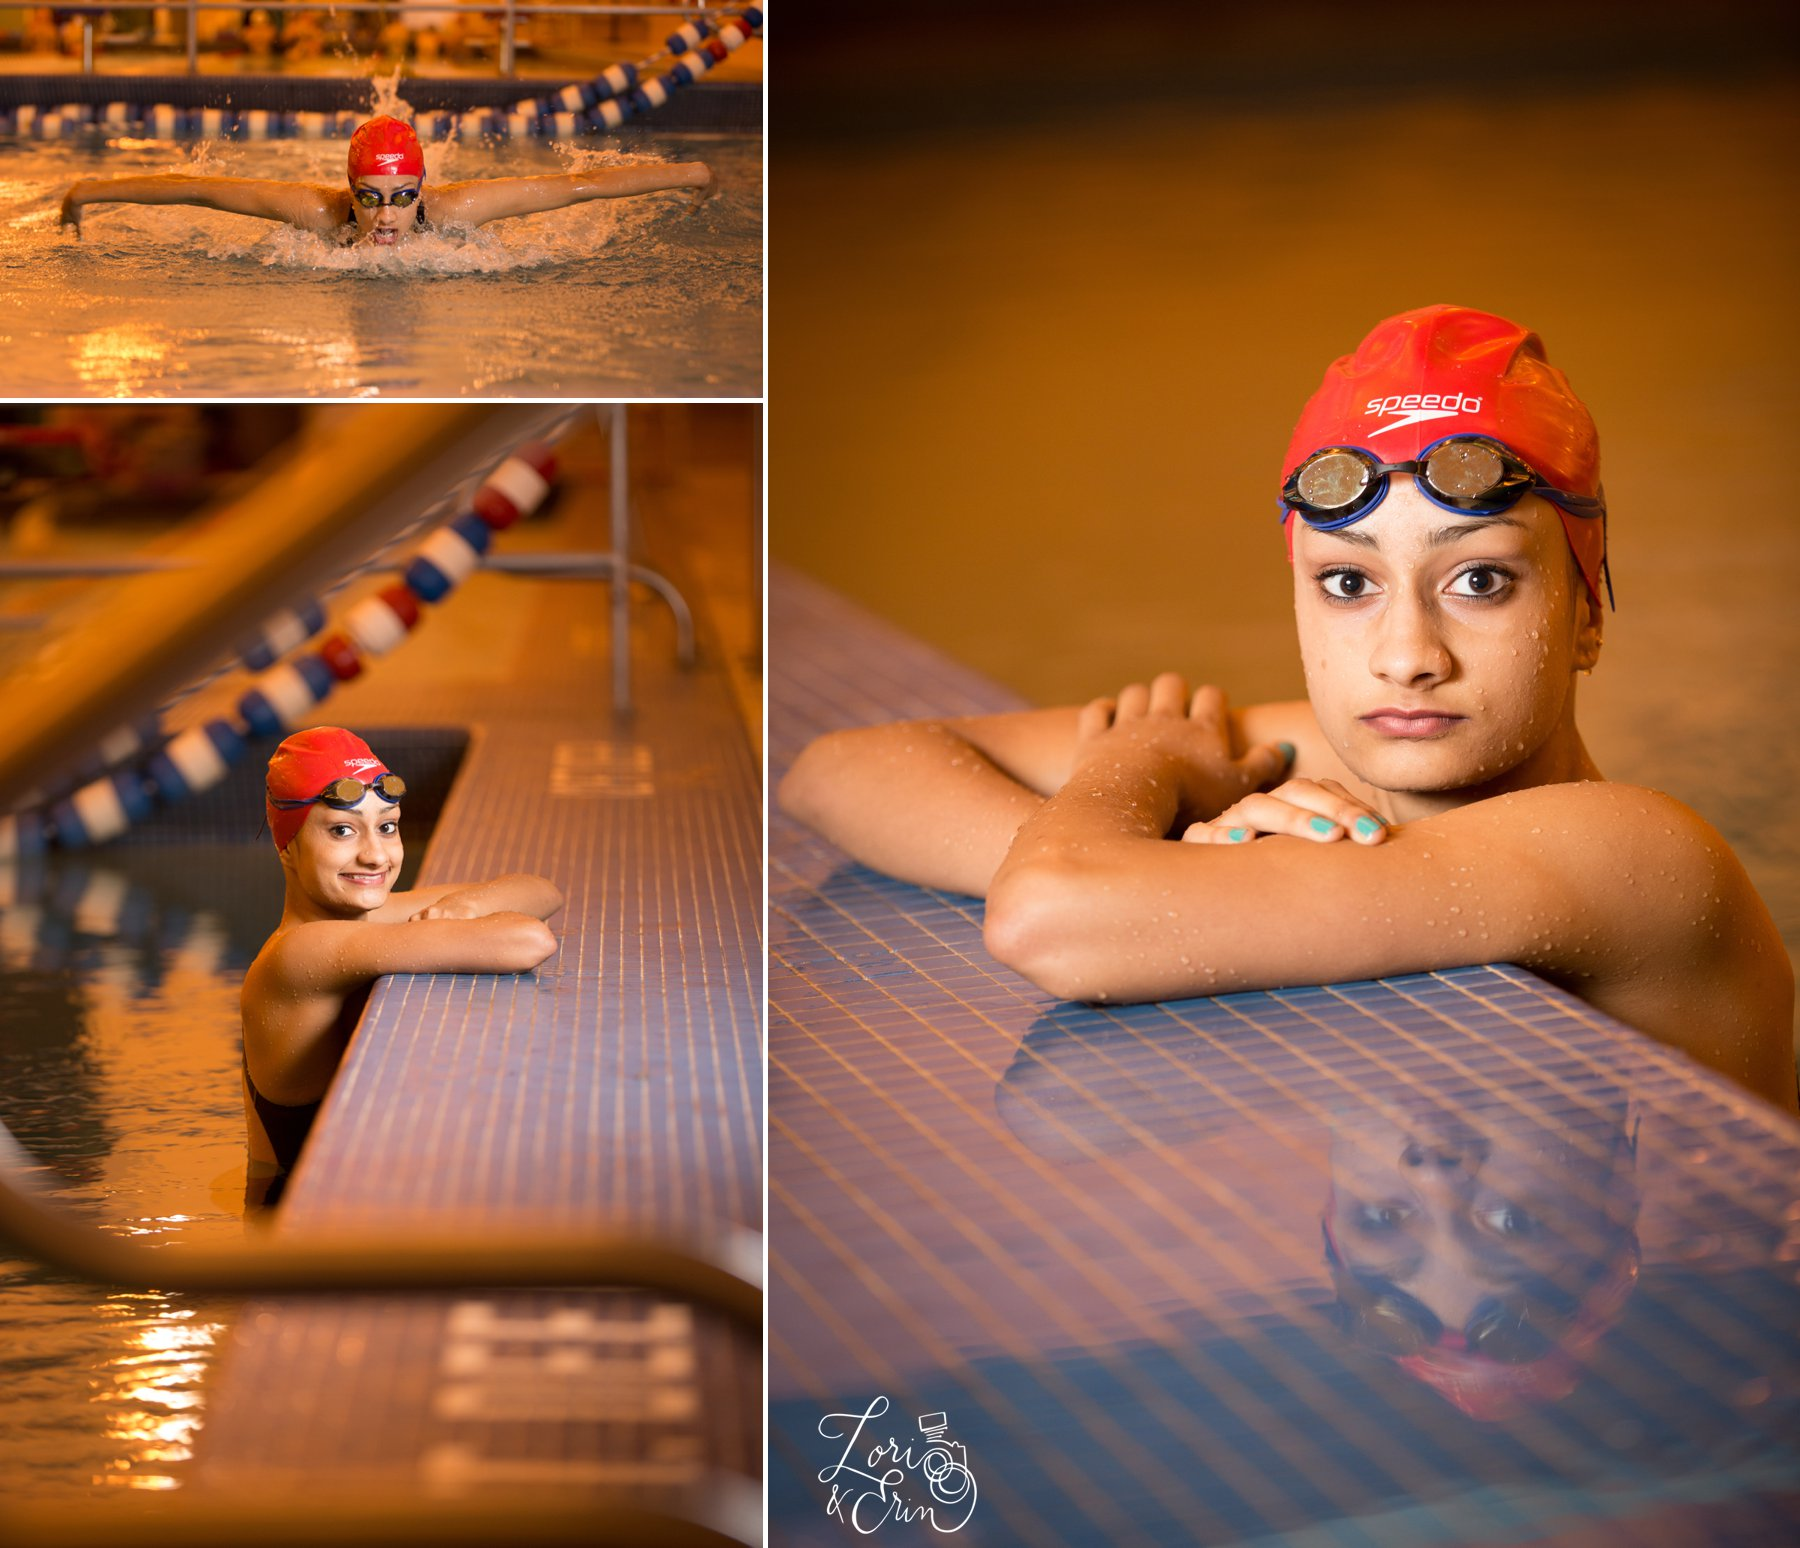 fairport,nothern stone,pool,senior,swimmer,